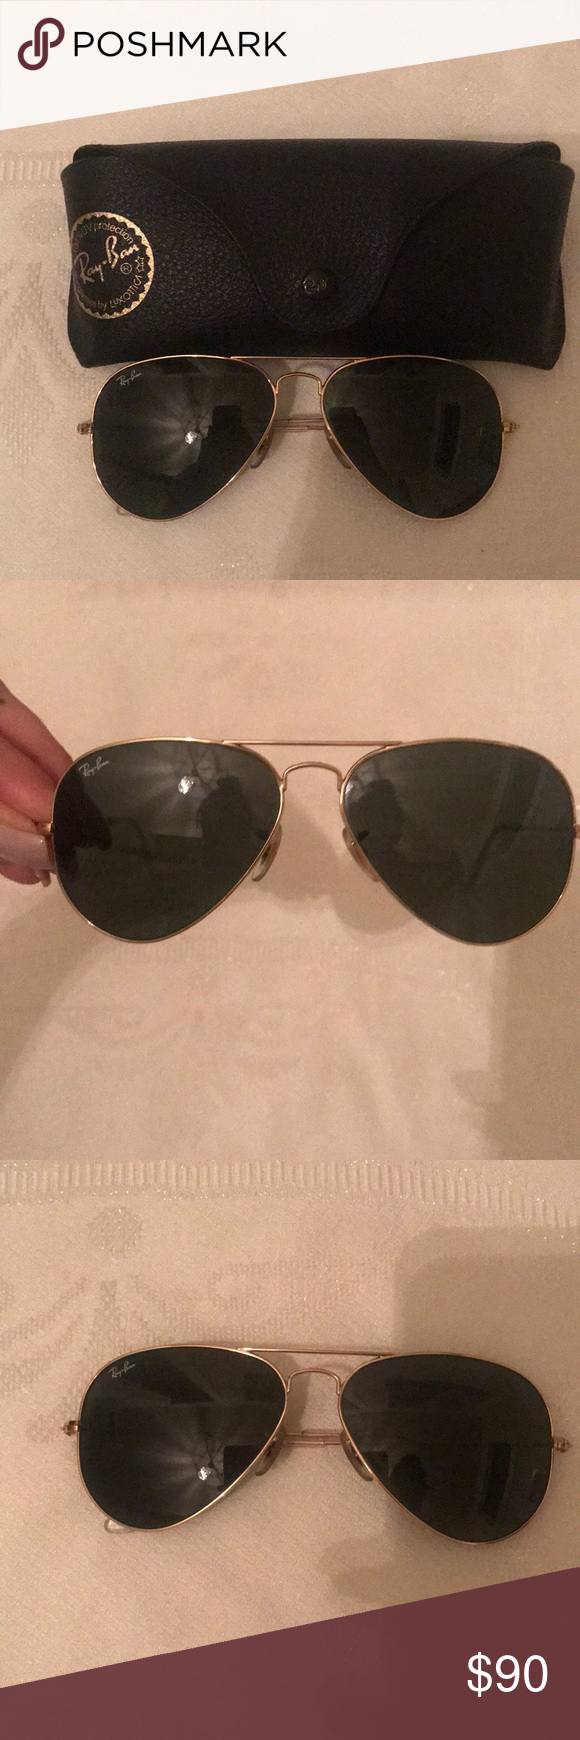 d1e15060ee1 Ray- Ban Classic Aviator sunglasses Currently one of the most iconic  sunglass models in the